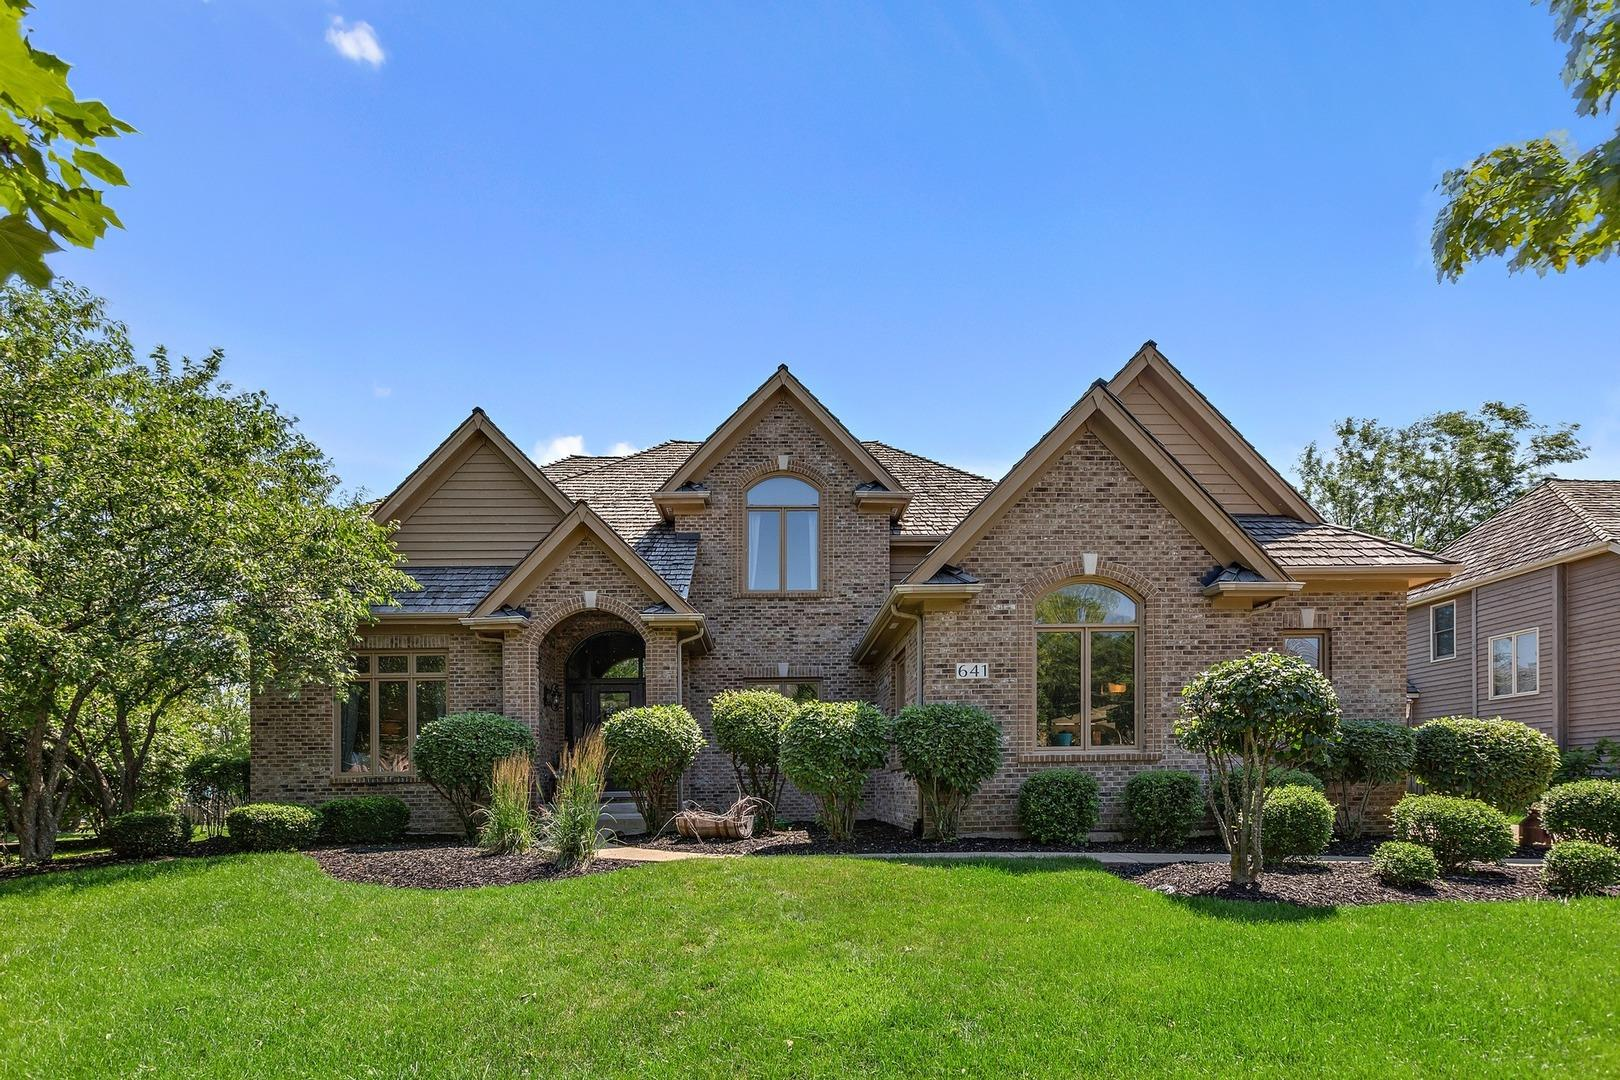 641 Waters Edge Drive, South Elgin, IL 60177 - #: 11143520